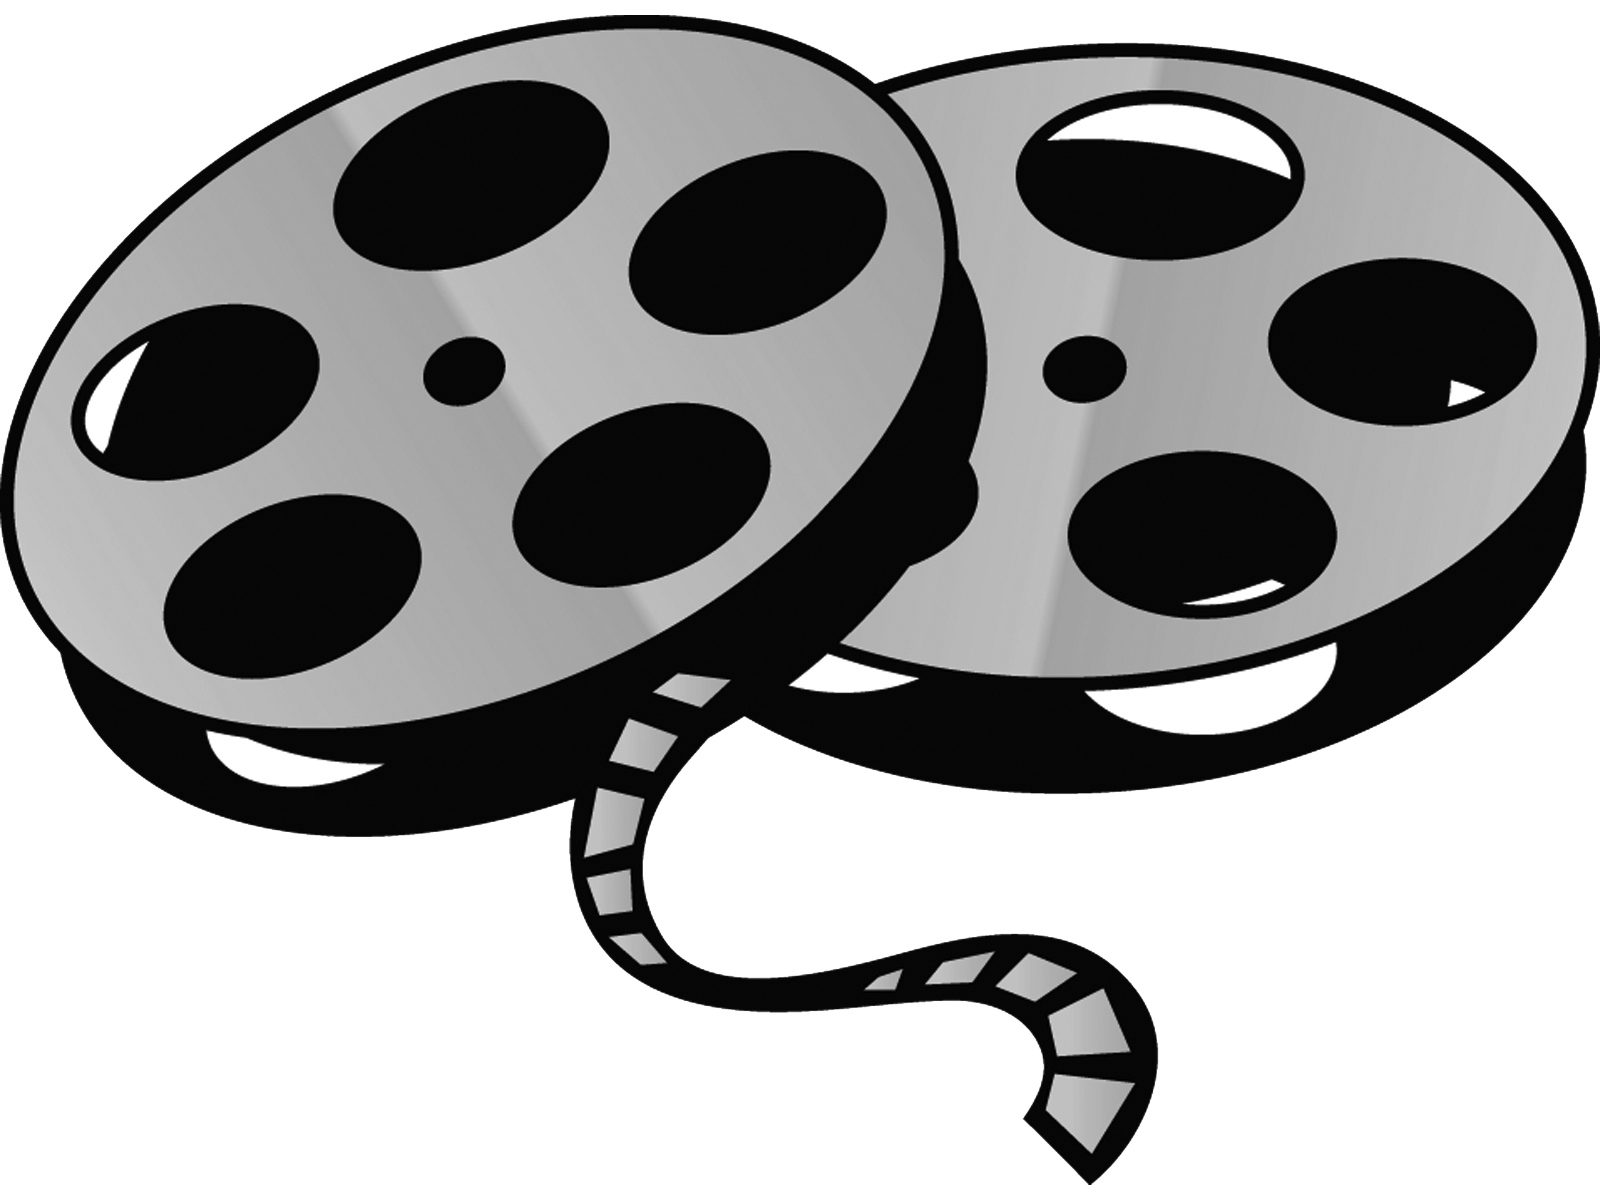 Movie Reel Clipart Black And . .-Movie Reel Clipart Black And . .-8